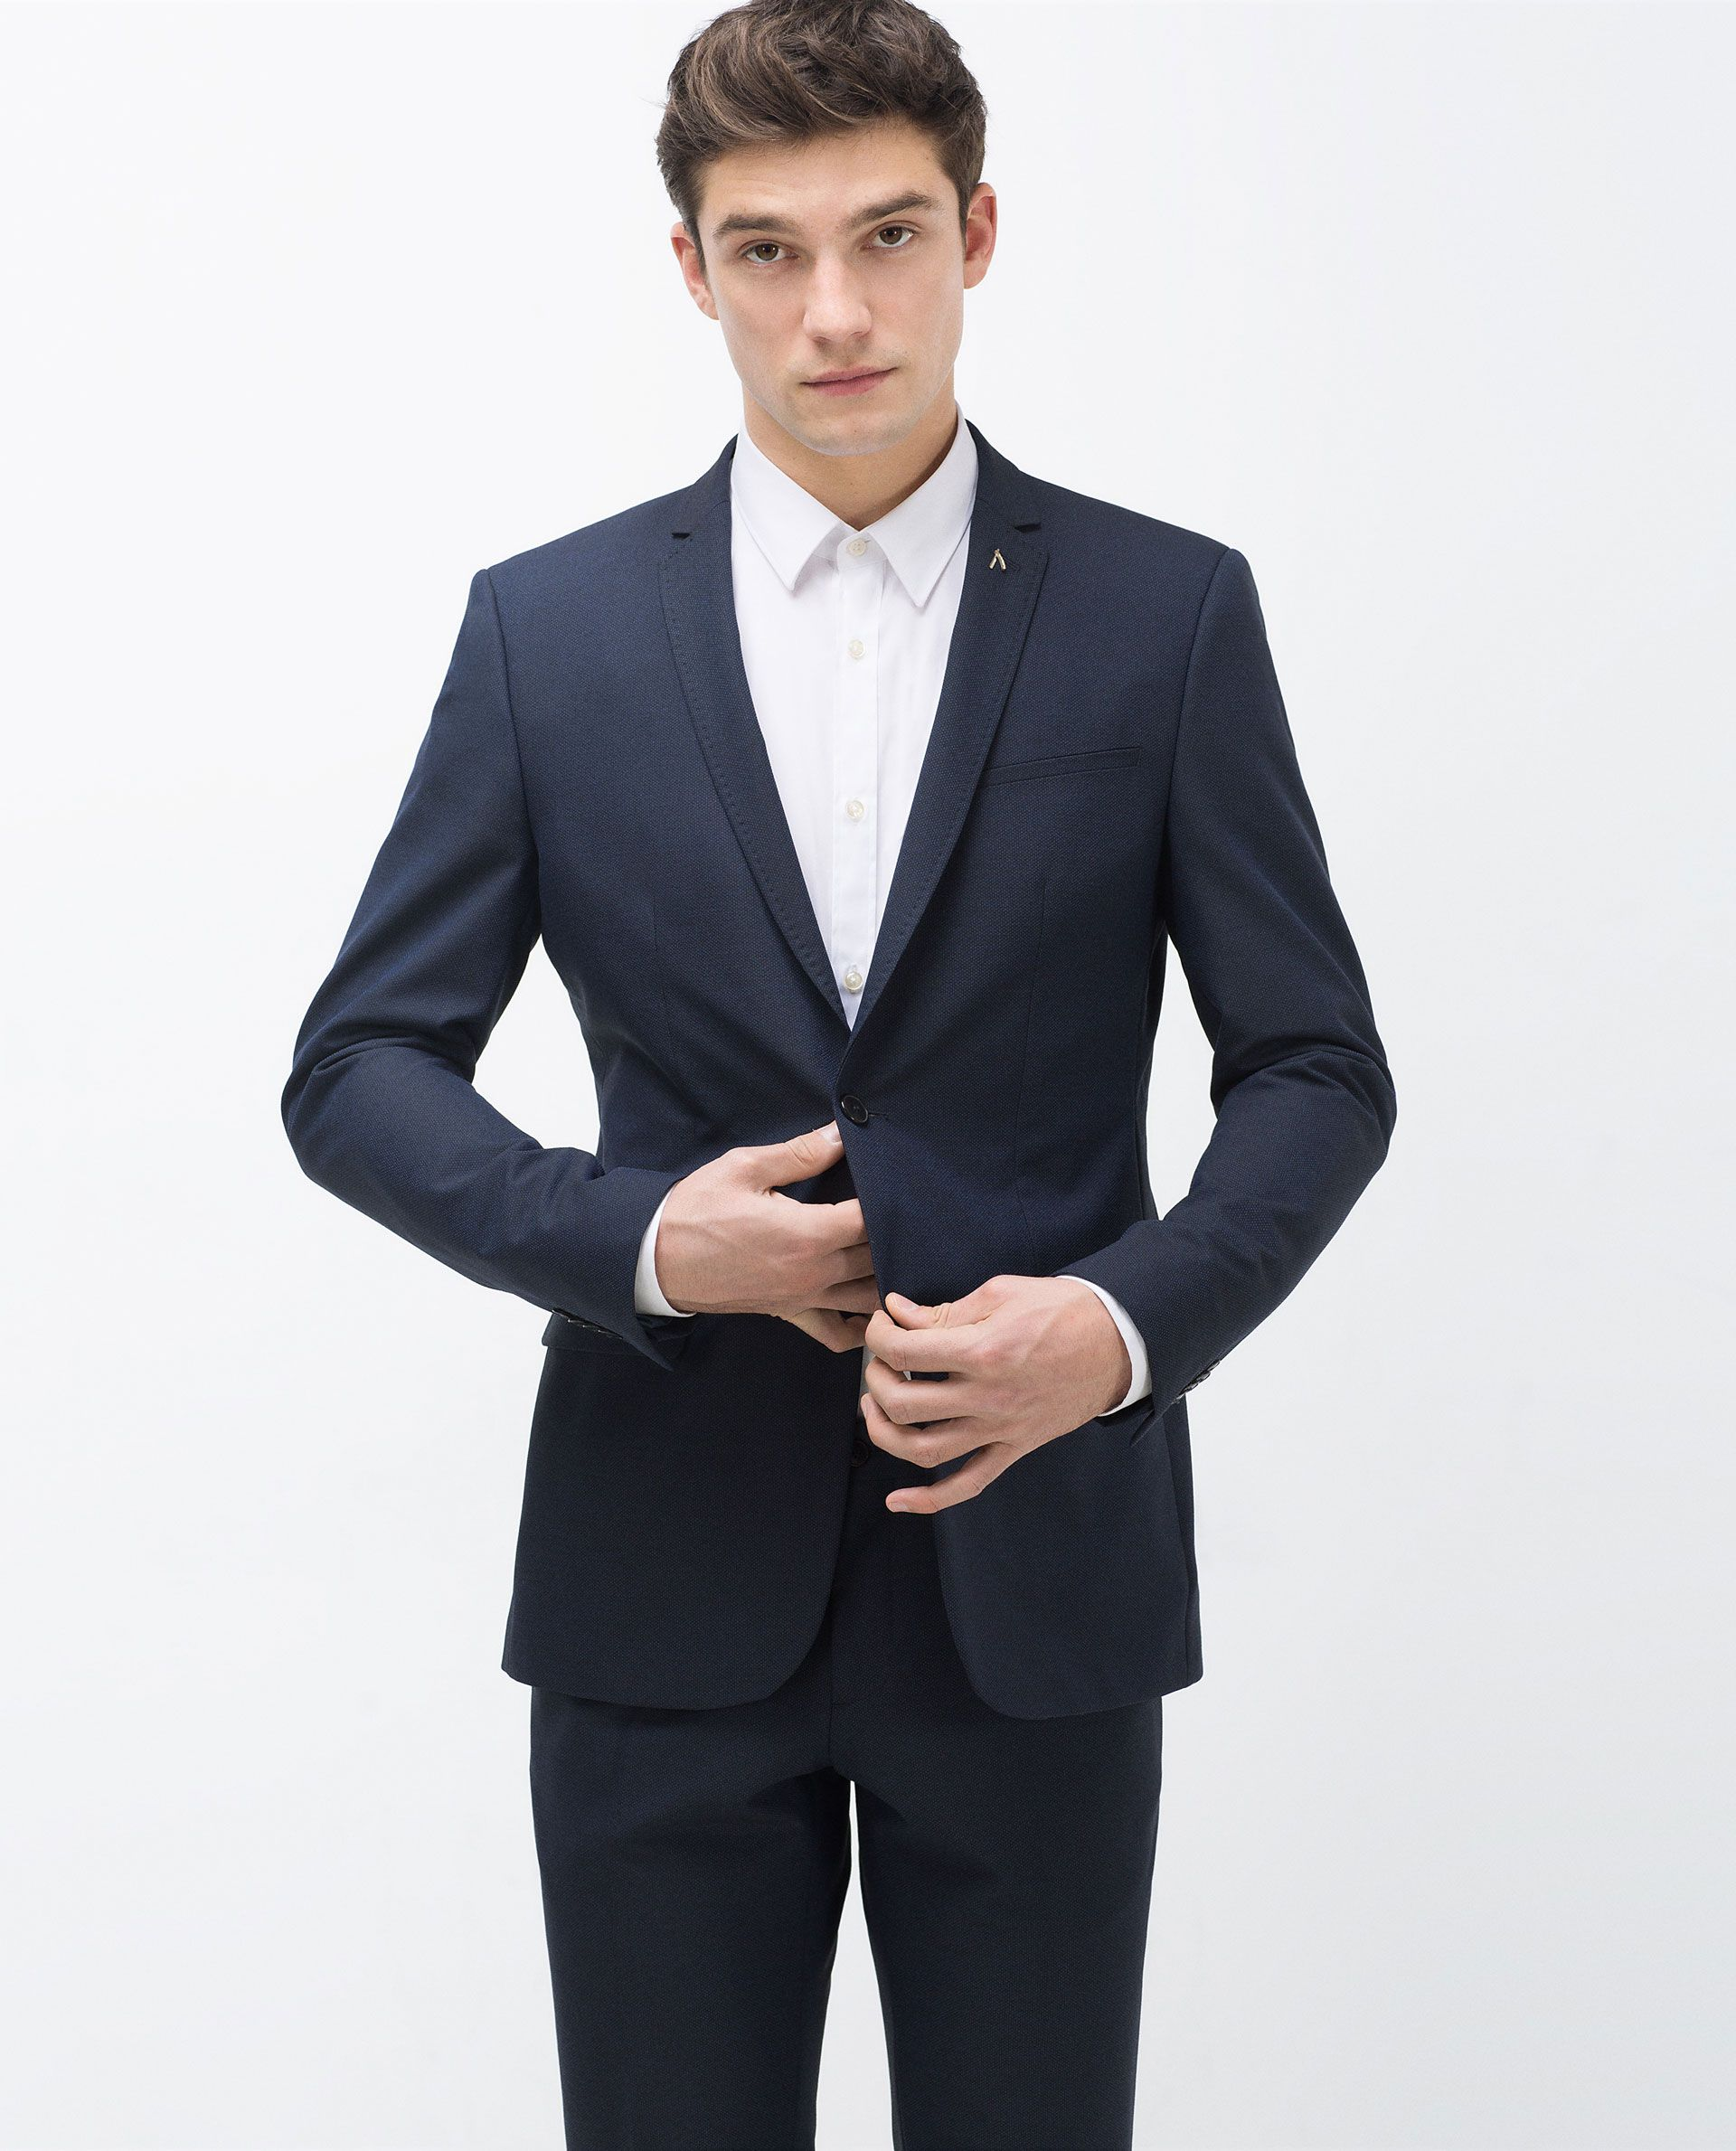 6e45791edf5 Navy suit from Zara | Wedding party outfit | Suits, Mens suits, Suit ...